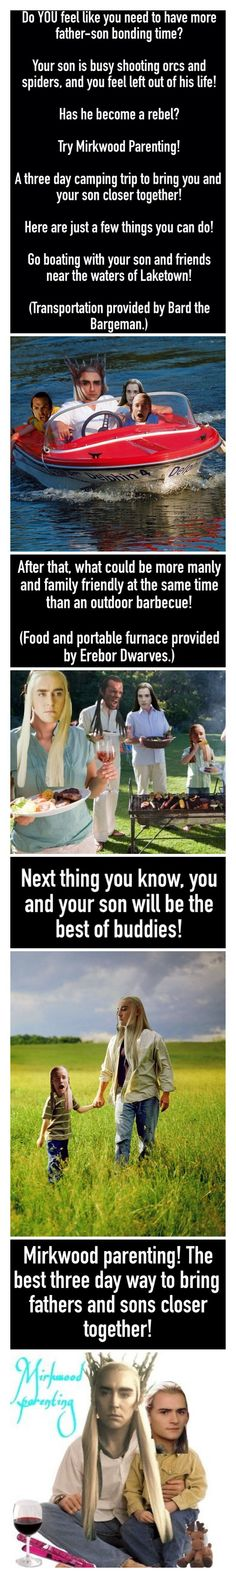 NOTE: PICTURES DO NOT BELONG TO ME! I wish I could give credit, but I honestly just found them around on the internet. The words however were done by me! ~ @TrollinLegolas   The Hobbit   Lord of the Rings   Humor   Legolas   Thranduil   Elrond   Lindir / Figwit